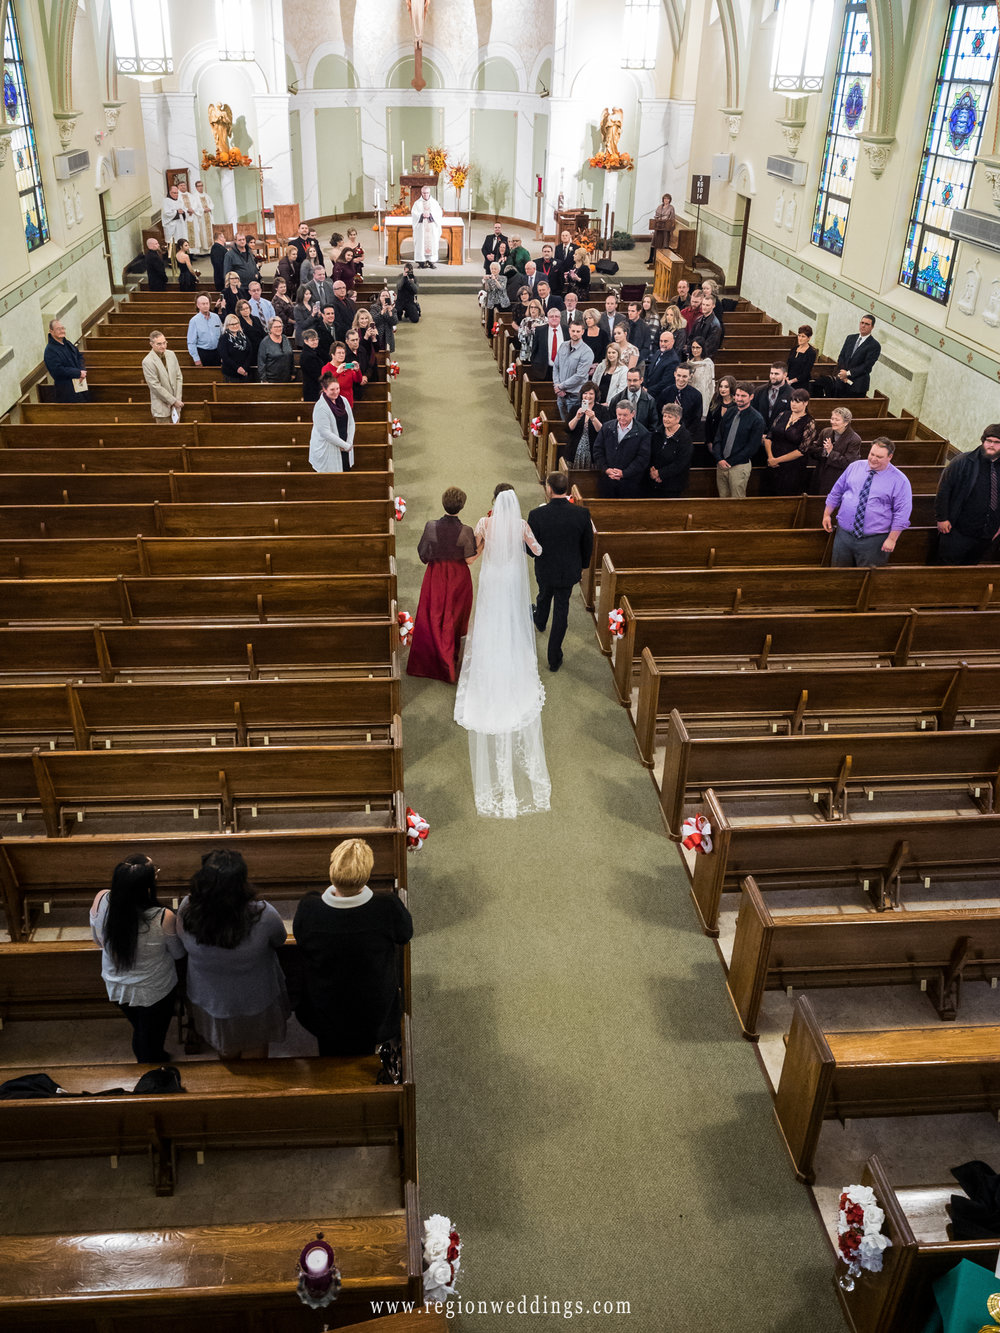 The bride walks down the aisle at Holy Name Catholic Church.